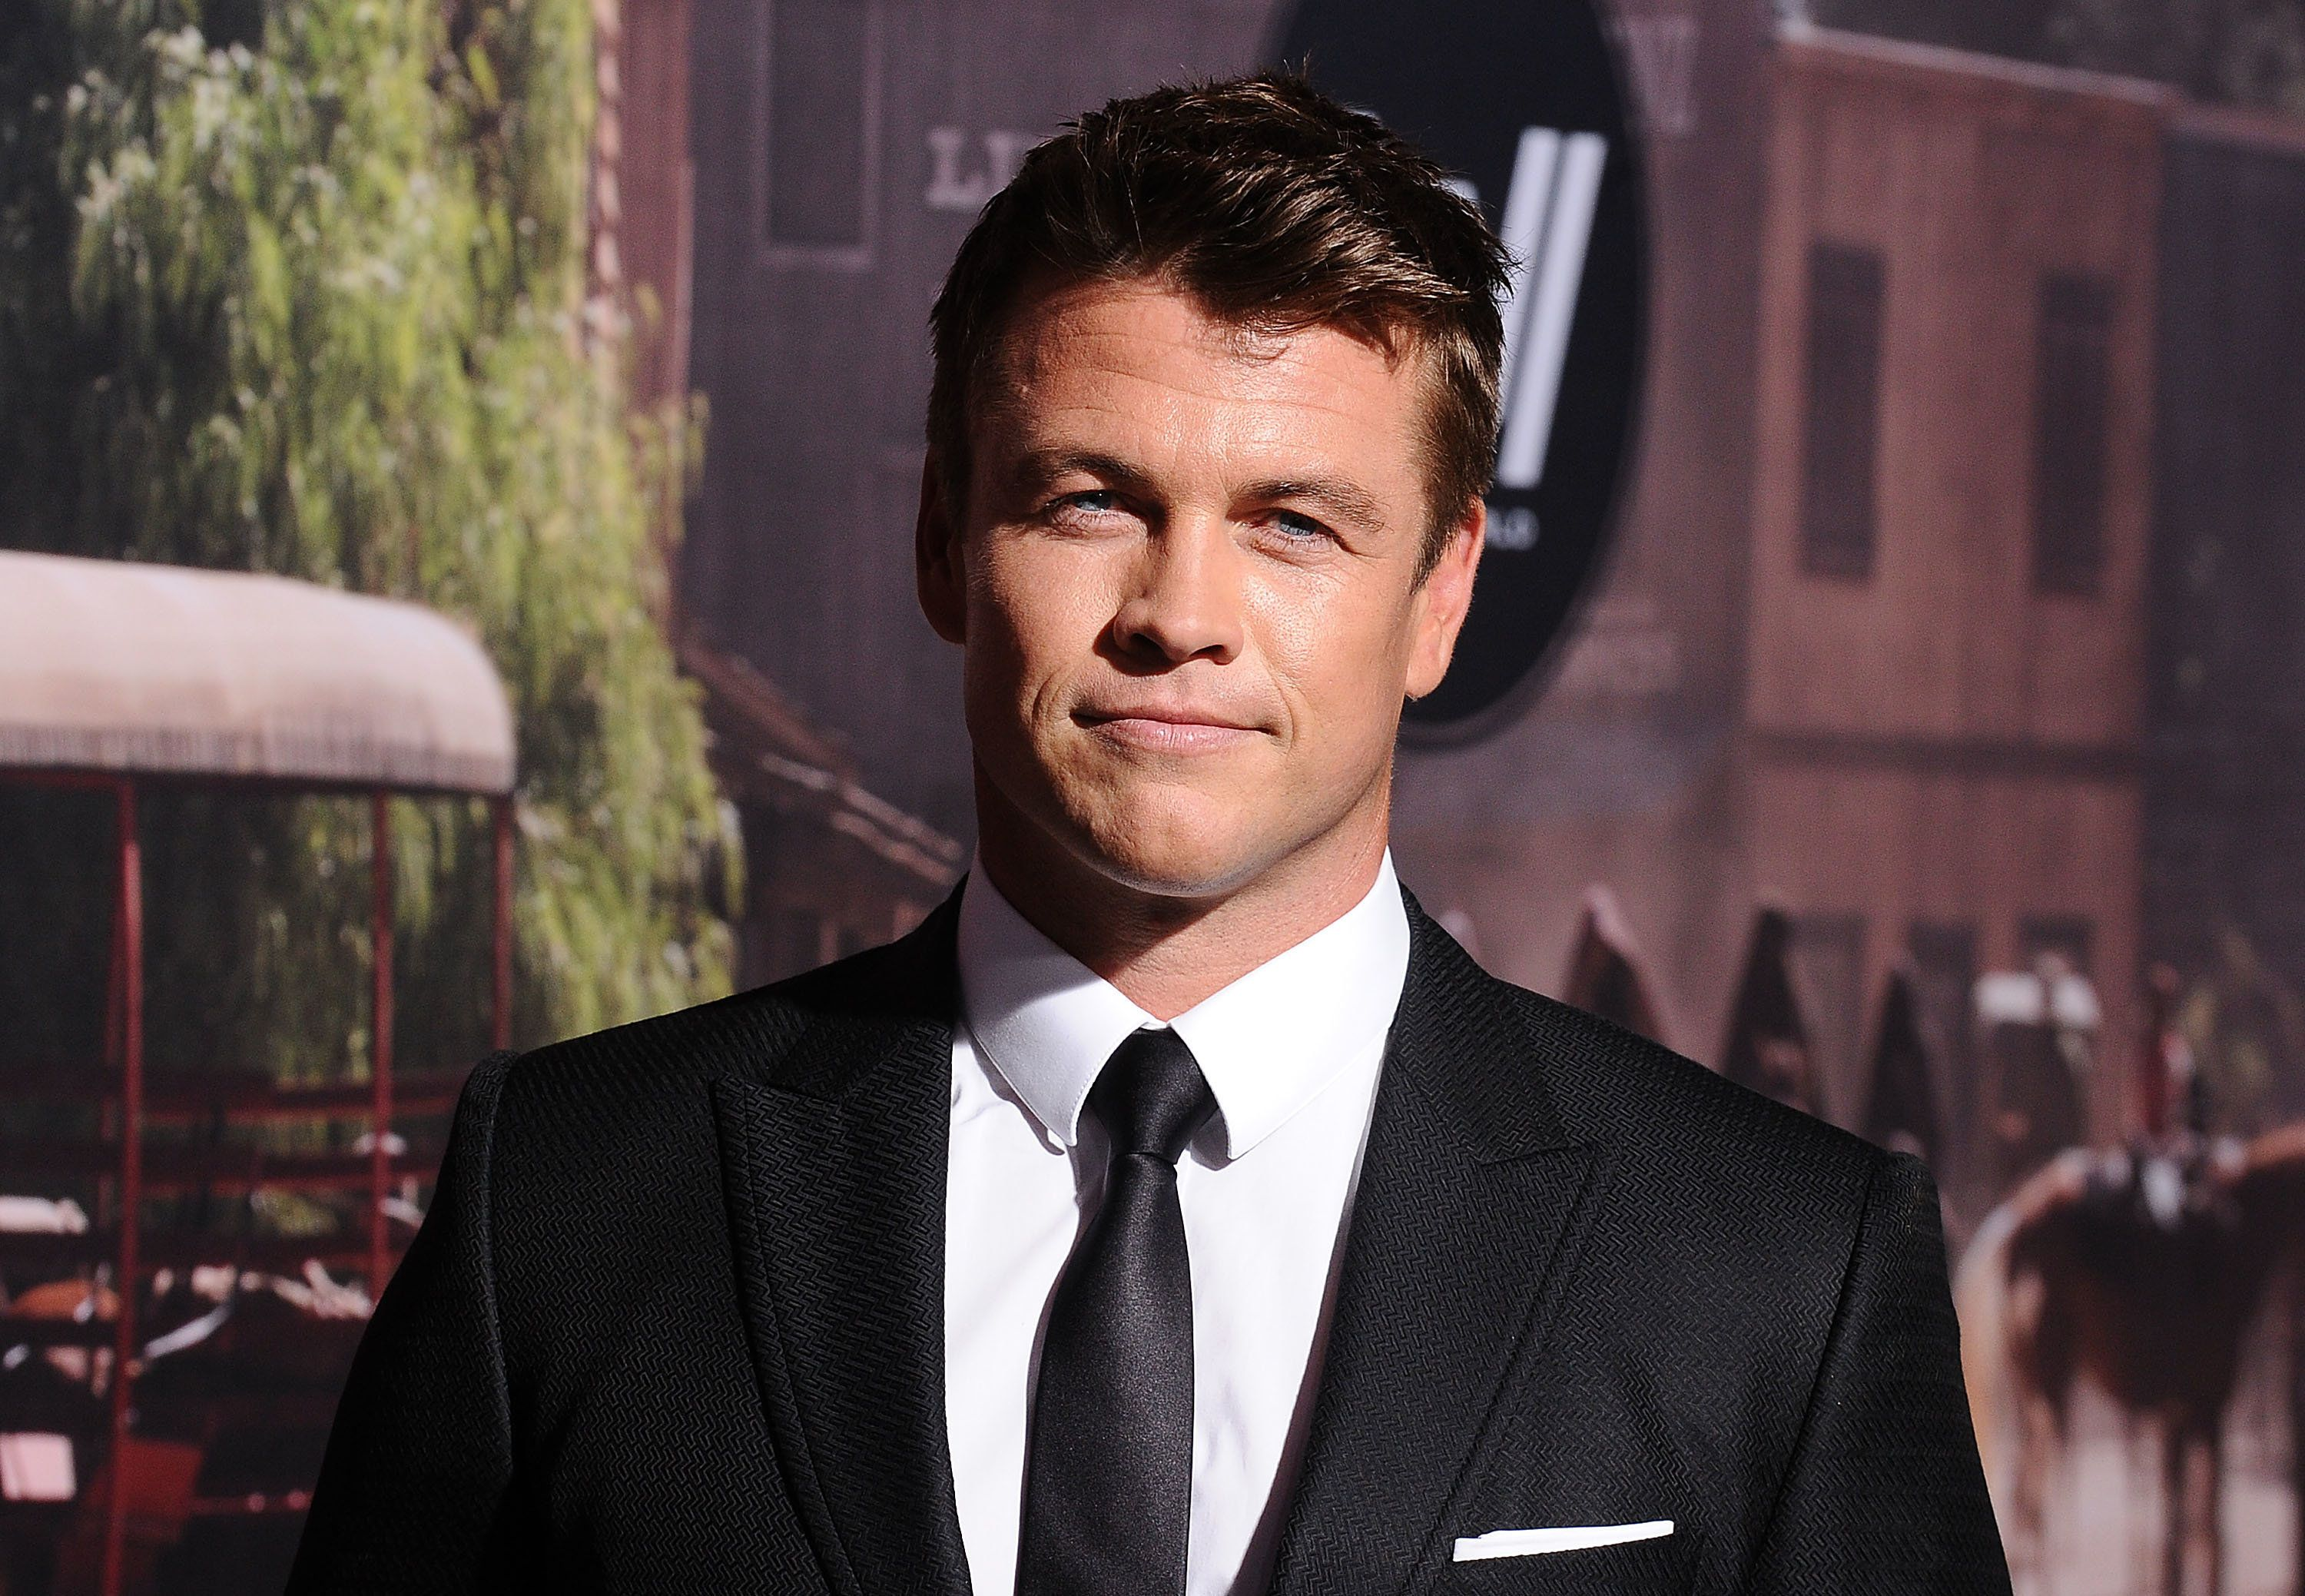 HOLLYWOOD, CA - SEPTEMBER 29:  Actor Luke Hemsworth attends the premiere of 'Westworld' at TCL Chinese Theatre on September 28, 2016 in Hollywood, California.  (Photo by Jason LaVeris/FilmMagic)